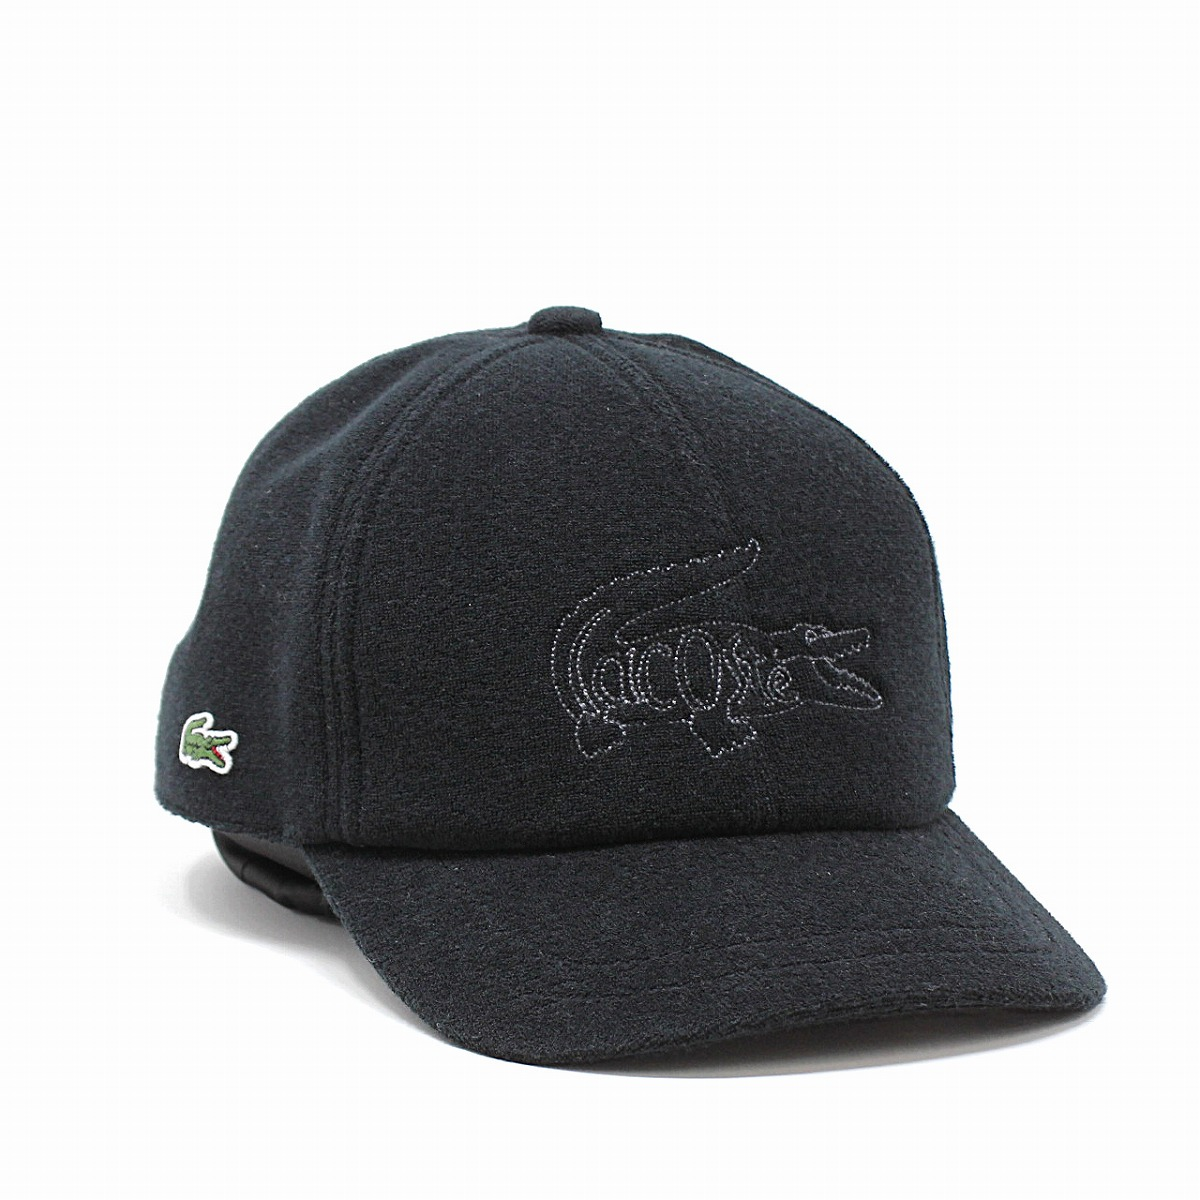 0c7e9ae515523 ELEHELM HAT STORE  CAP hat crocodile embroidery pile 58cm simple plain  sports casual clothes   black black  cap  made in Lacoste men cap pile  cloth LACOSTE ...